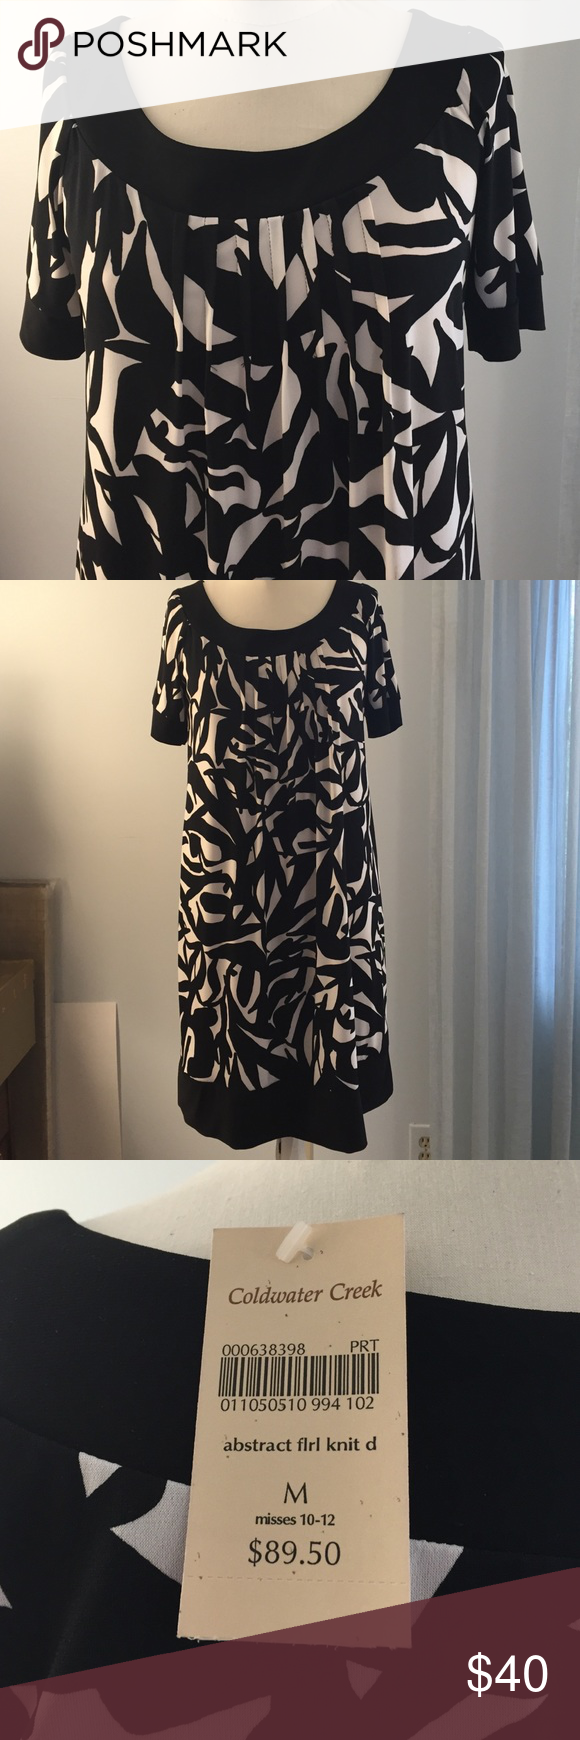 3-season easy care short sleeve shift dress. Super easy care wash & wear 95% polyester 5% spandex dress. Brand new, tags attached. Coldwater Creek Dresses